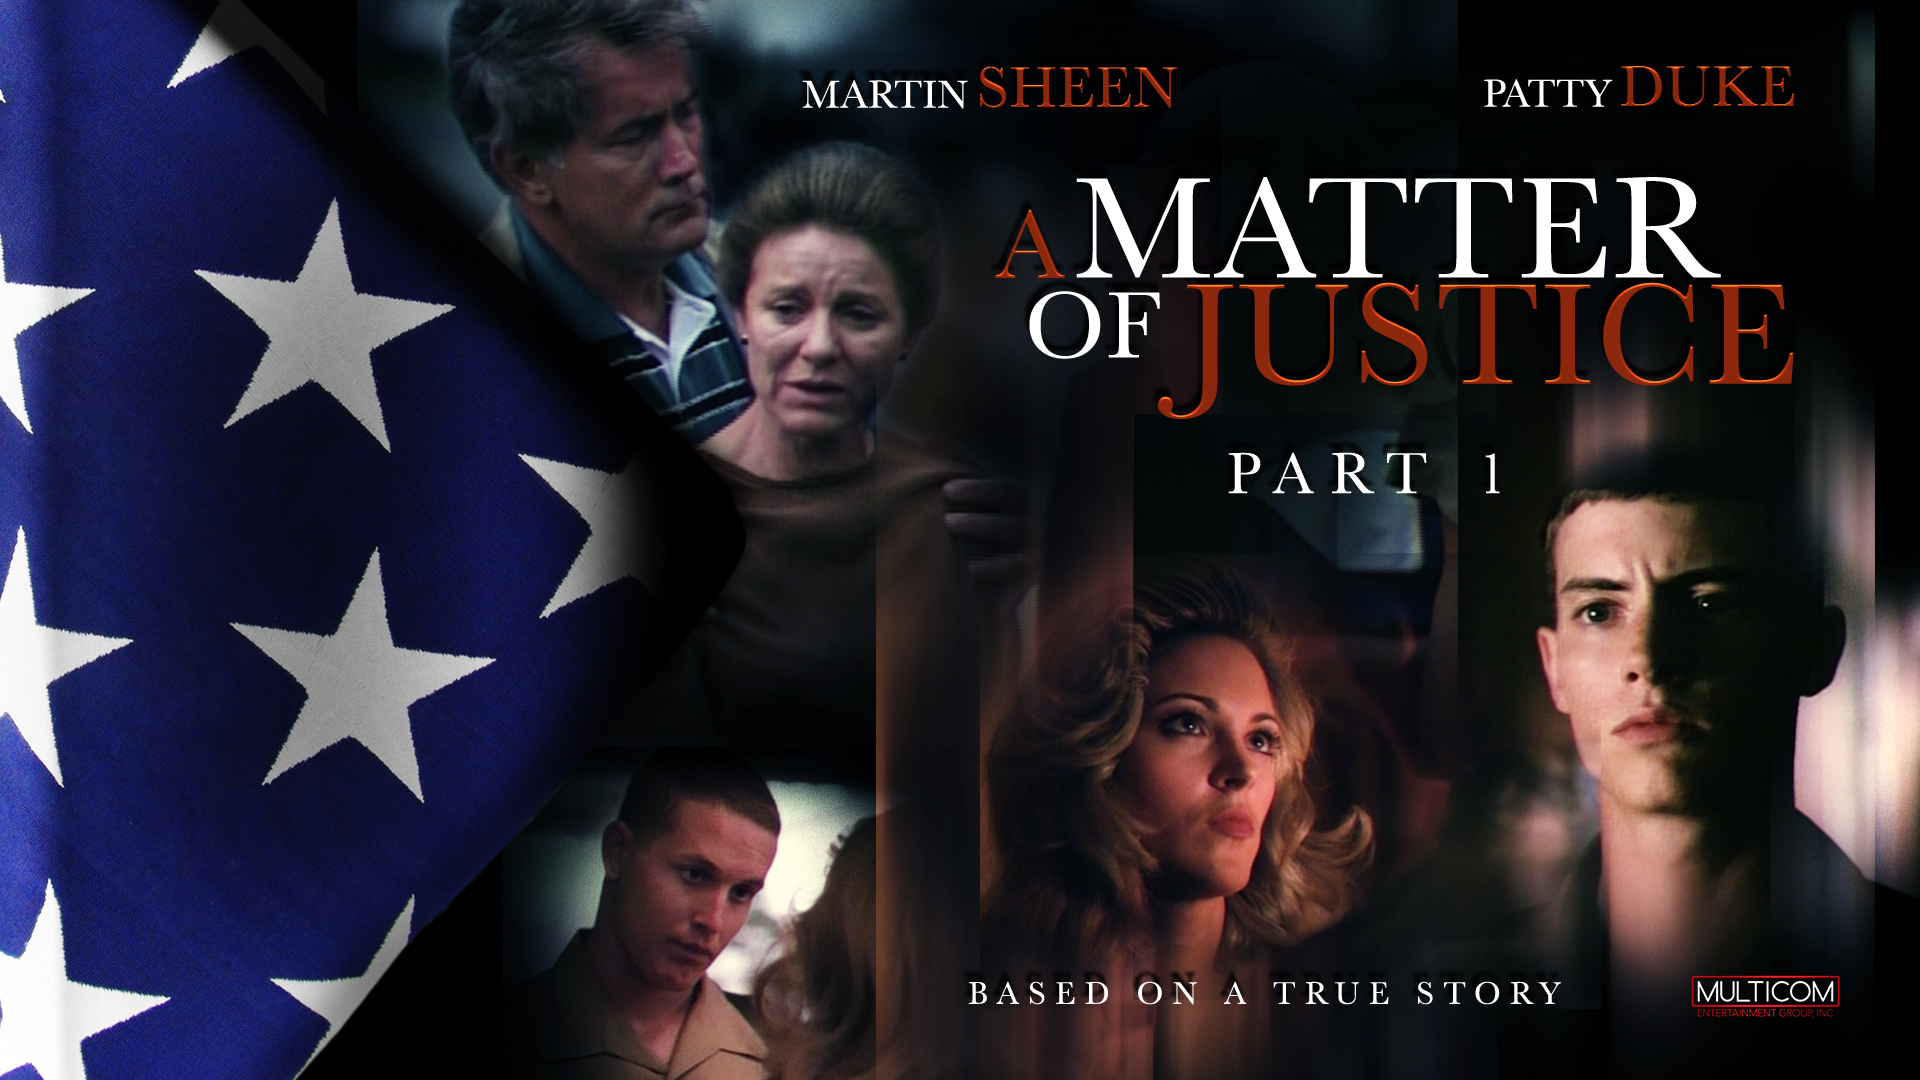 A Matter of Justice - Part 1 (Restored)